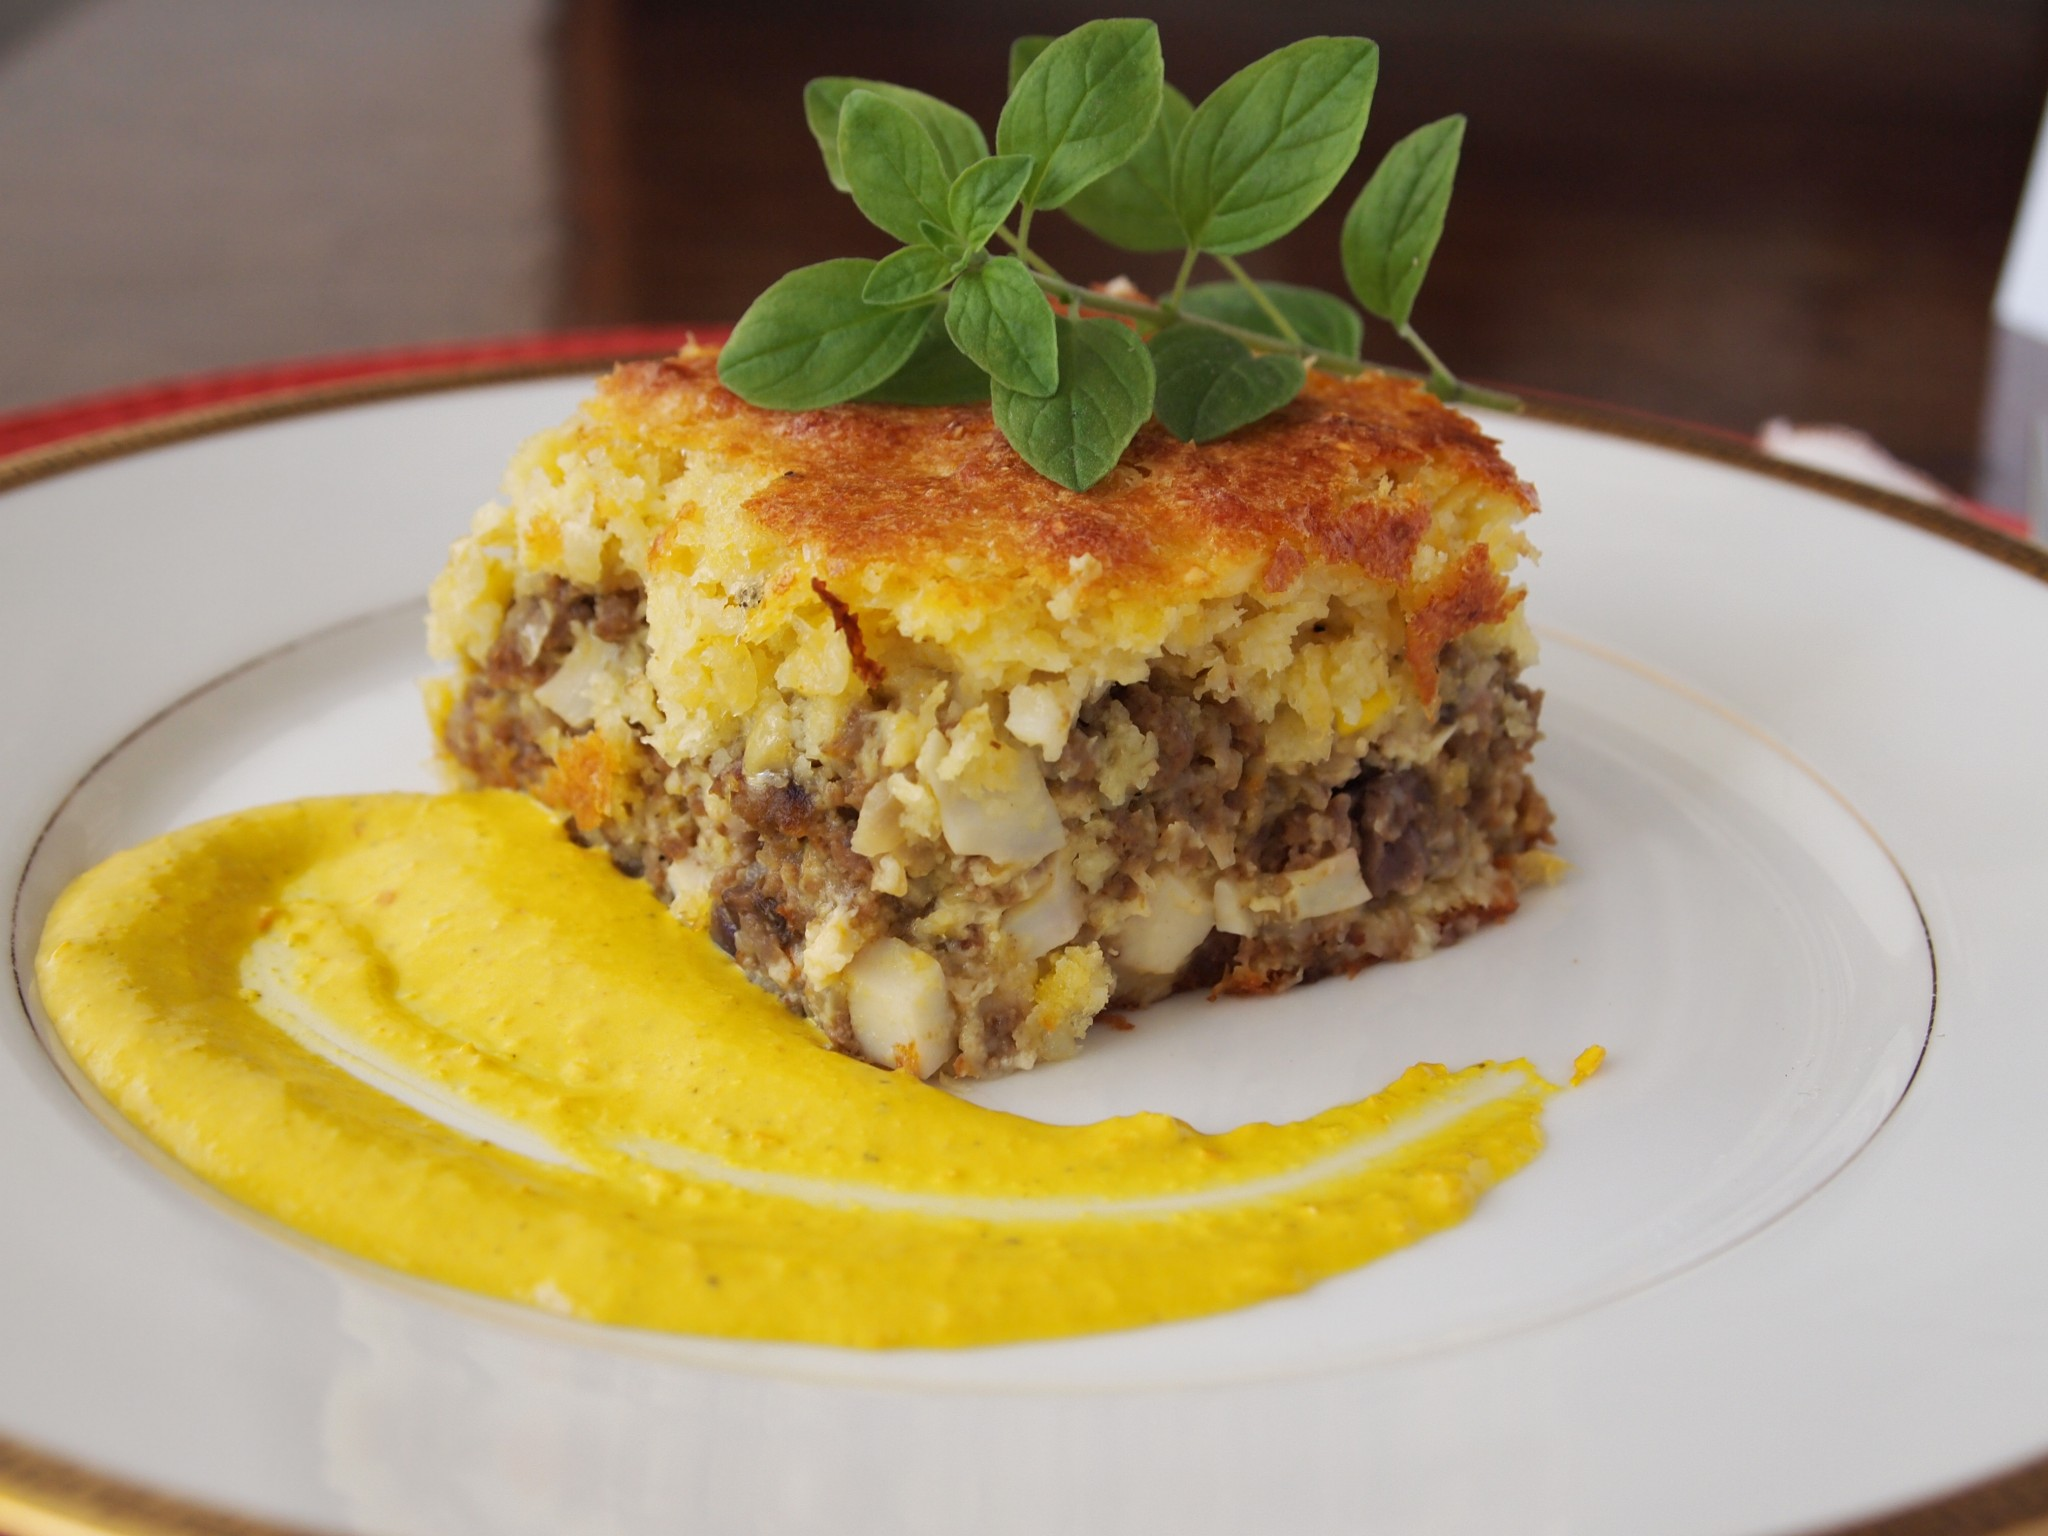 Corn pie, stuffed with beef, raisins, black olives and boiled eggs.